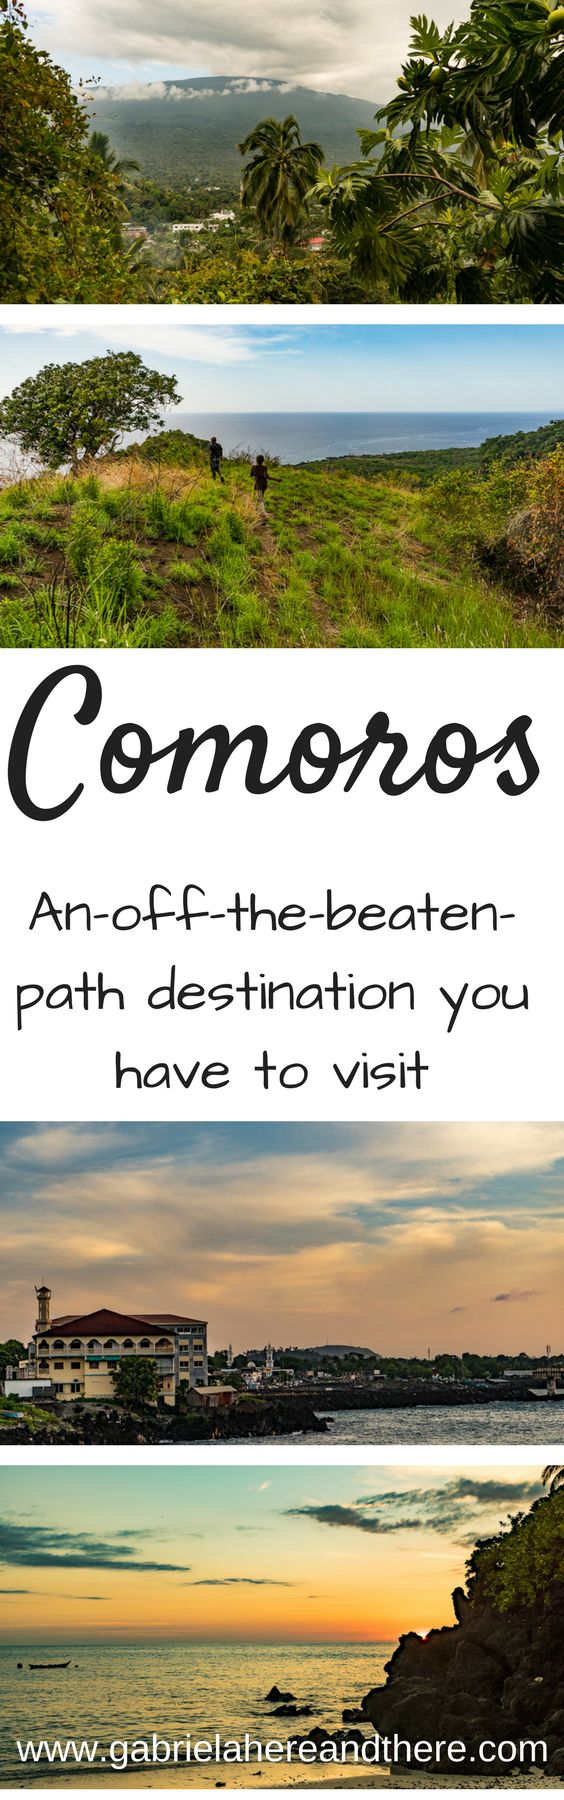 Comoros - an-off-the-beaten-path destination you have to visit